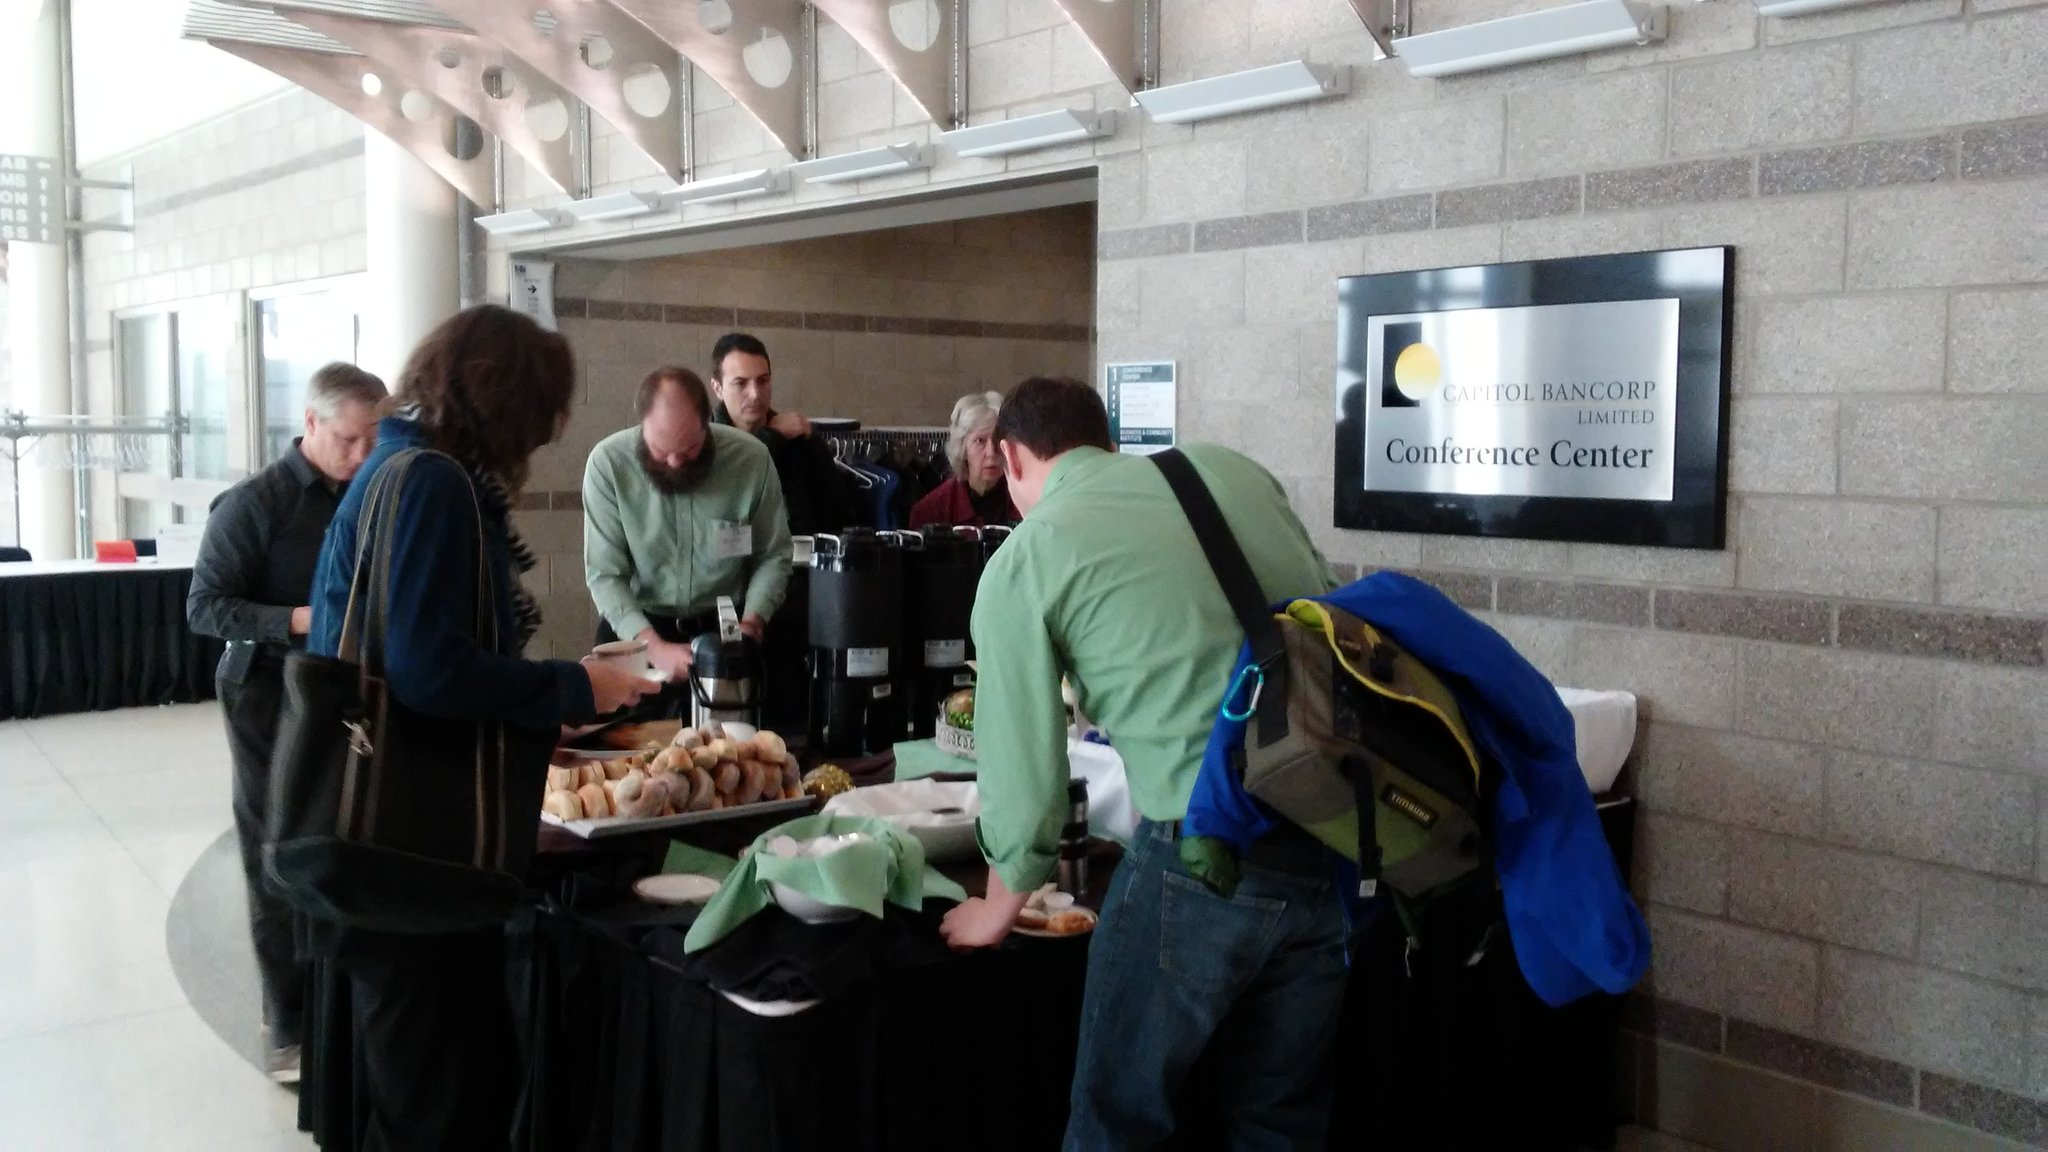 Registration & breakfast at the Linked Data Summit! #mclschat #linkeddata https://t.co/qFab3qOG3X